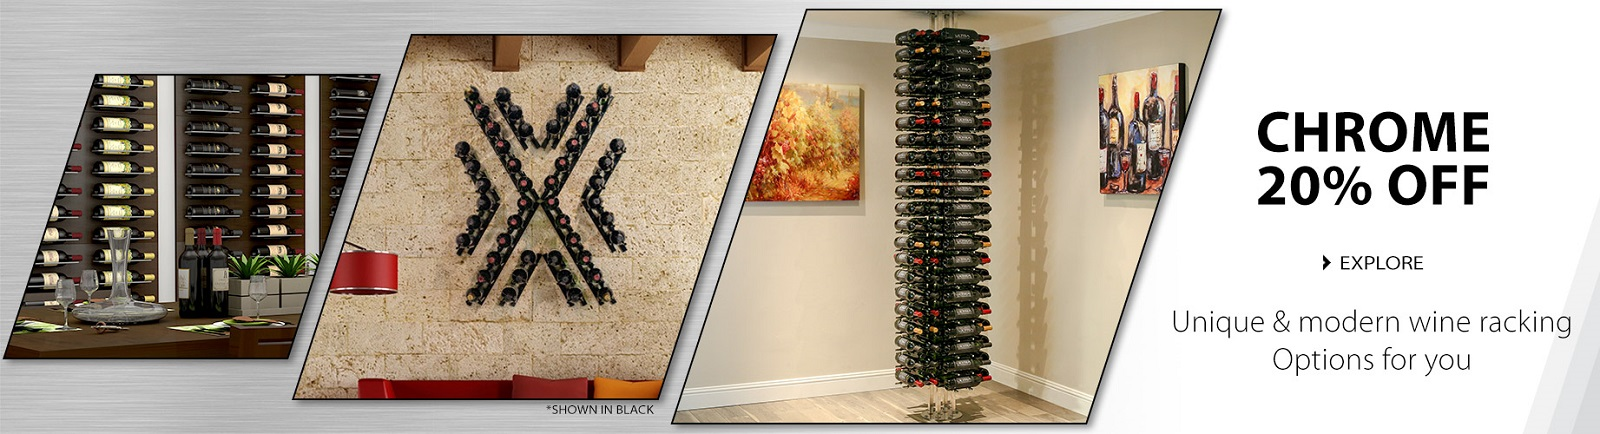 Modern Metal Wall Mounted Wine Racks Ultra Wine Racks & Cellars